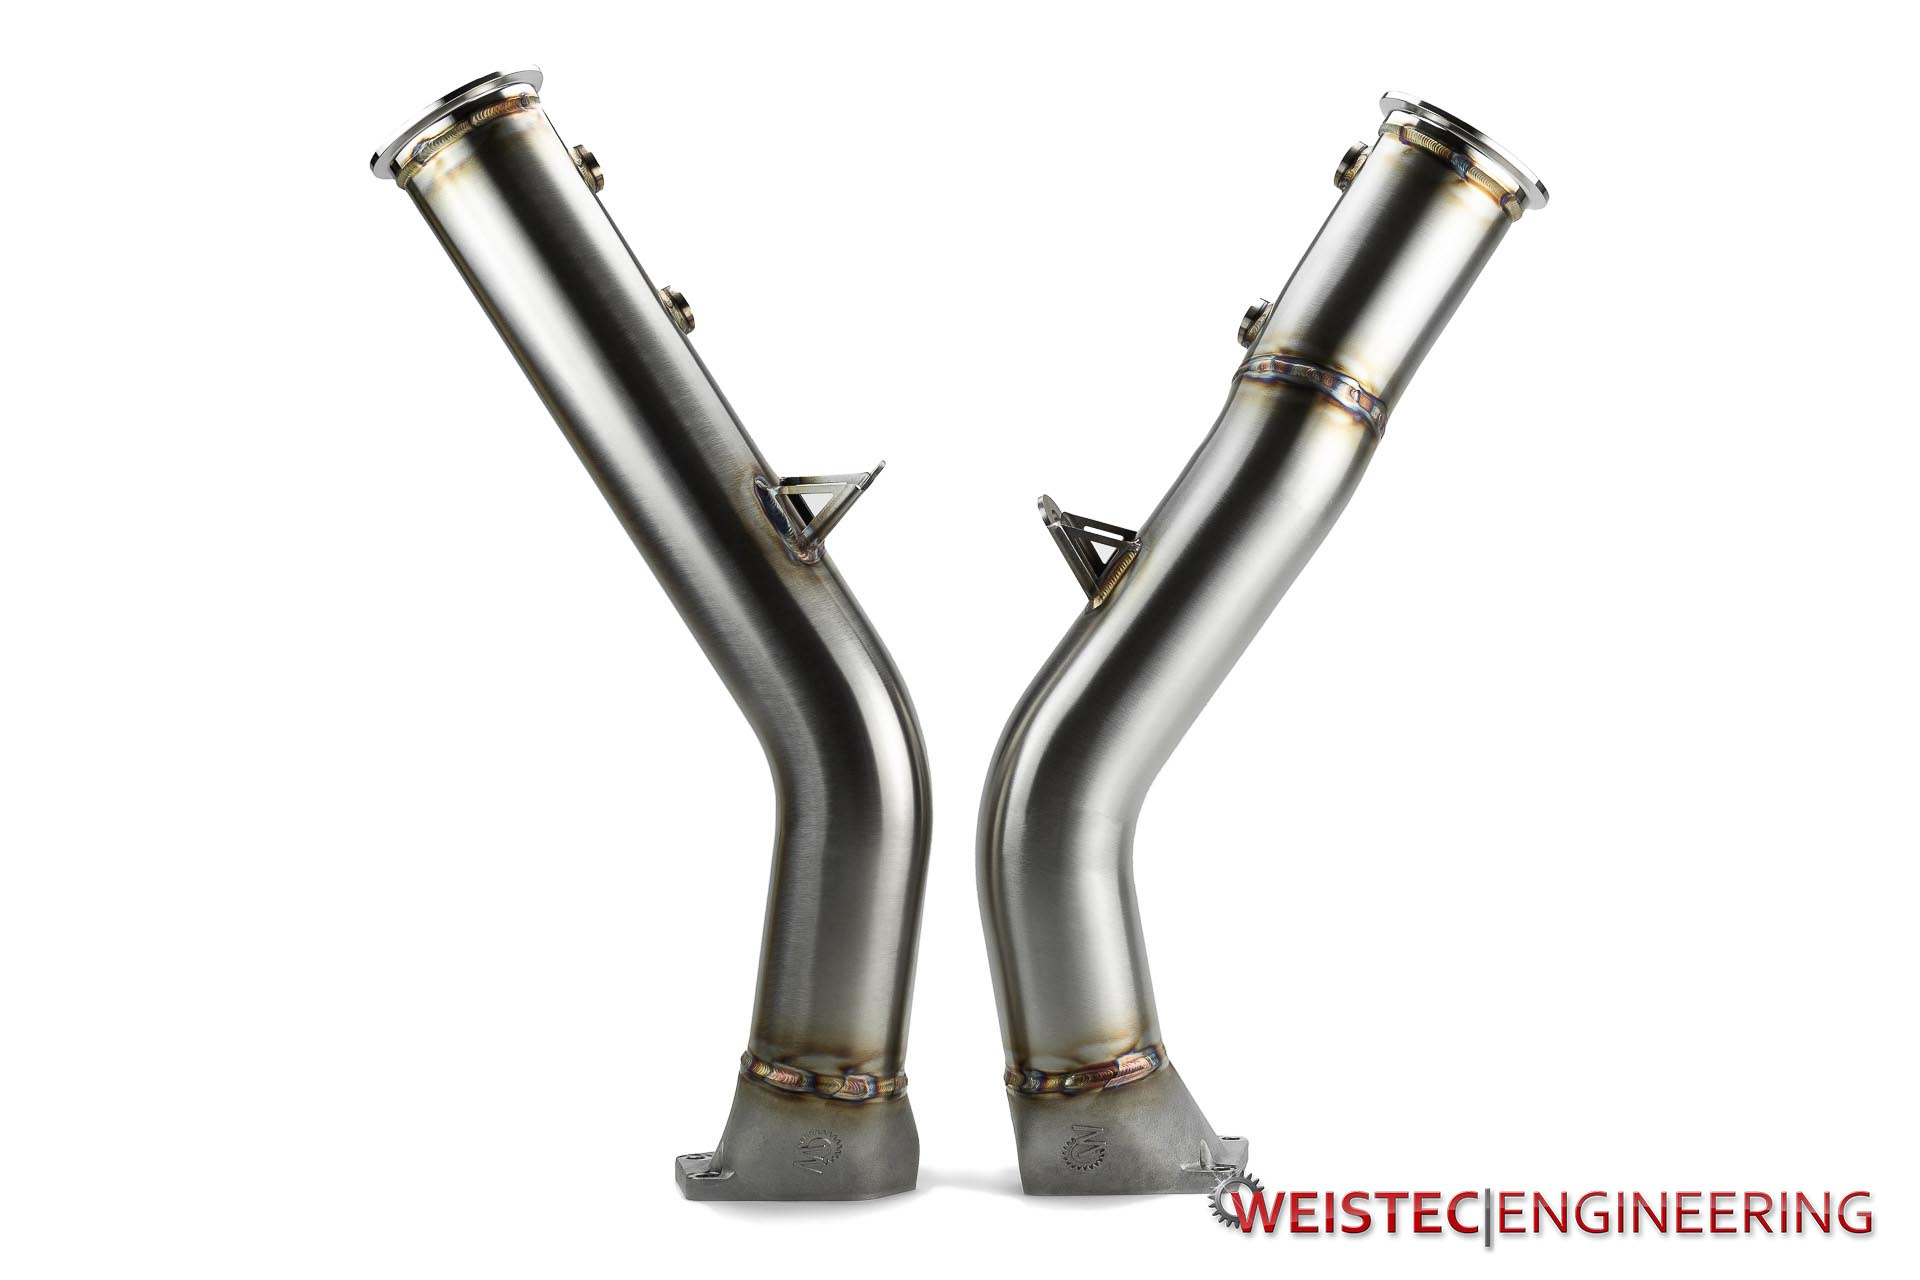 Mercedes Benz Amg M157 Downpipe Exhaust Cls63 Awd